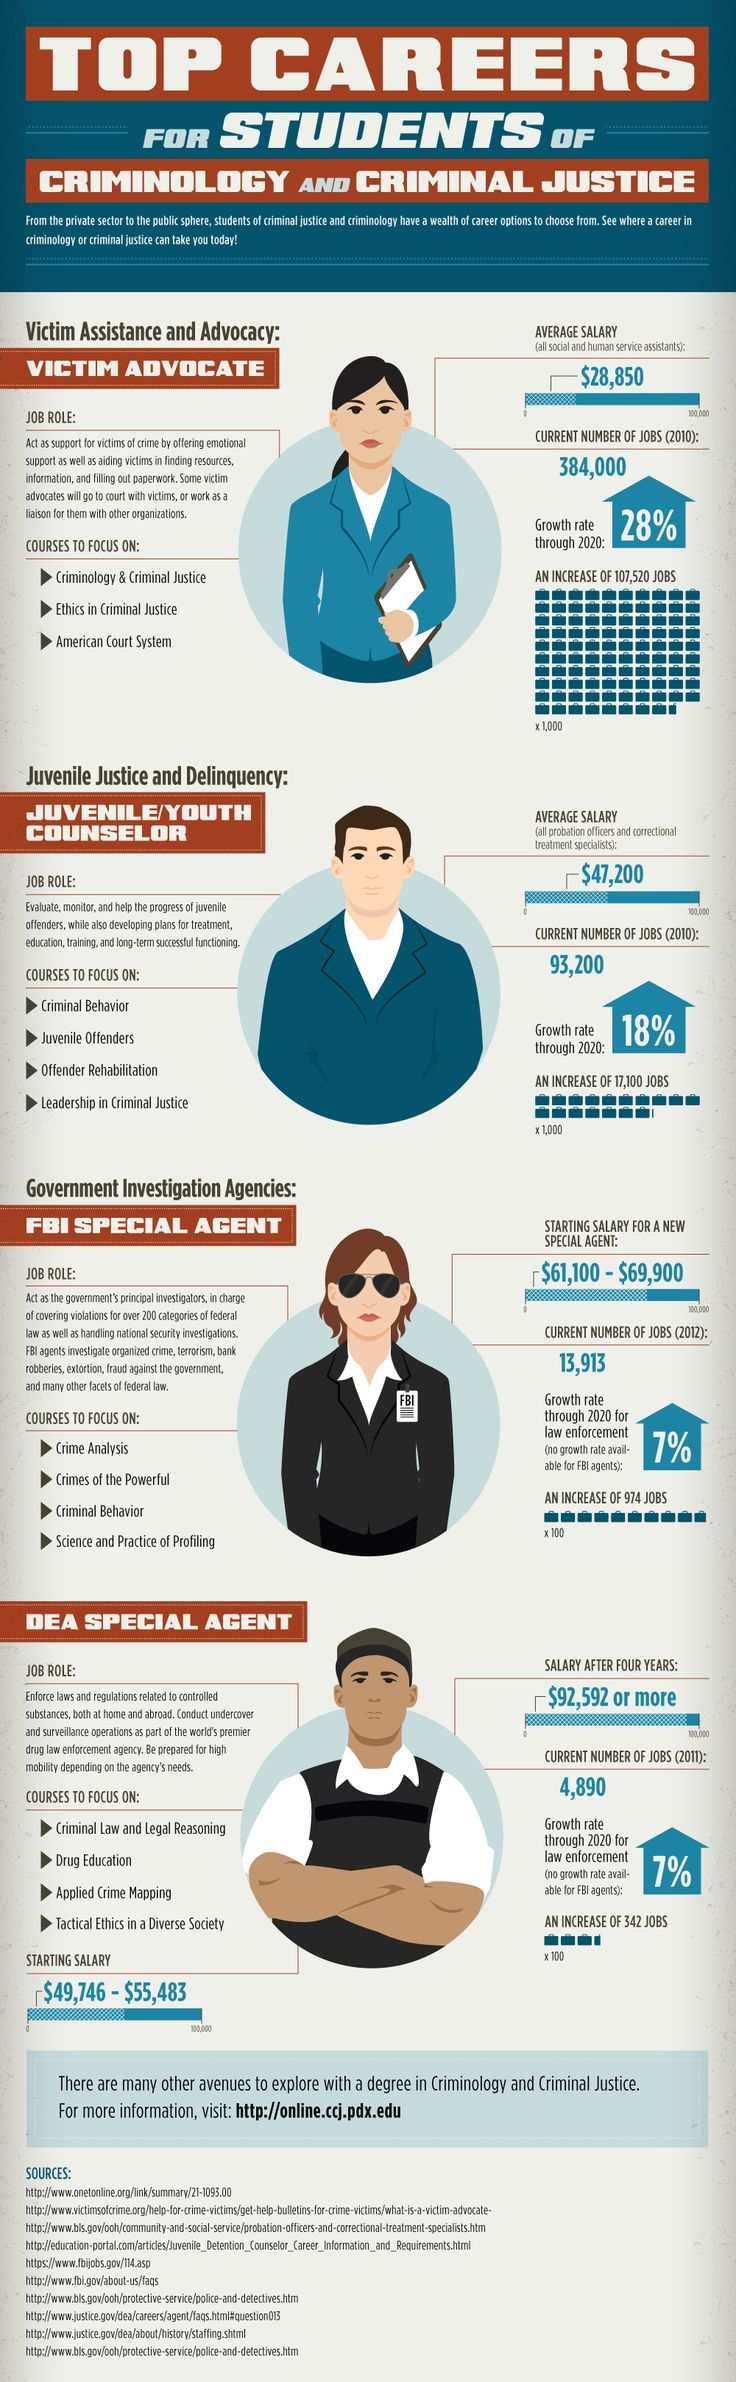 Top Careers for Students of Criminology and Criminal Justice